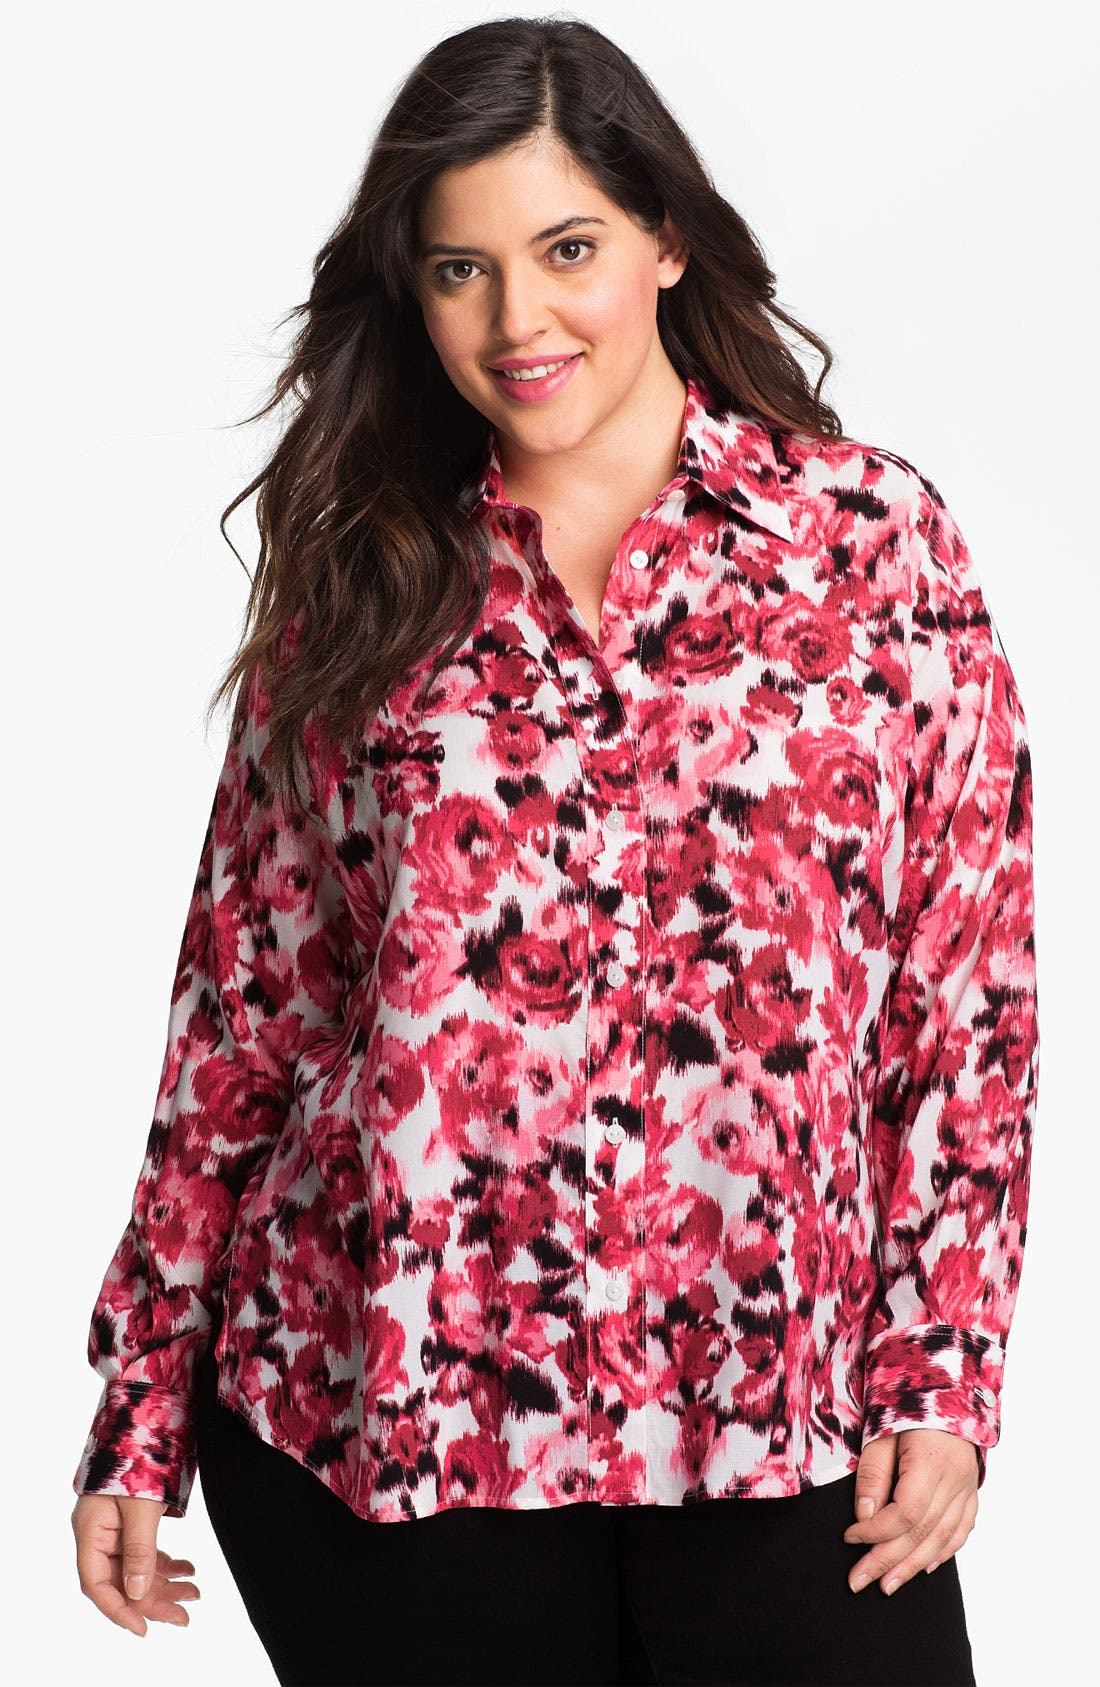 Alternate Image 1 Selected - Foxcroft Rose Print Shirt (Plus Size)